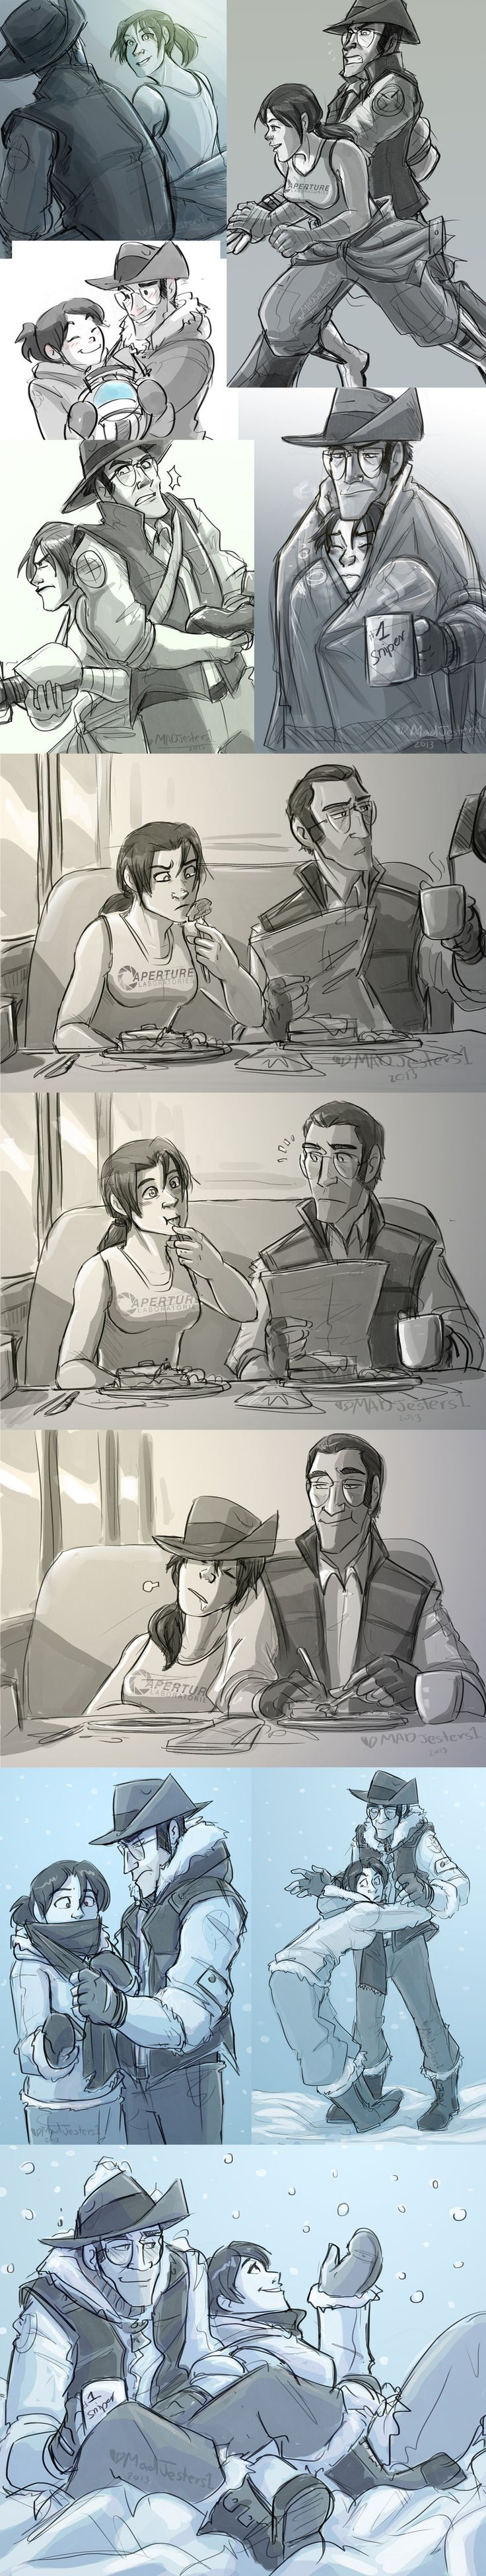 Tf2-LongLost Chell Sniper sketches2 by MadJesters1.deviantart.com on @DeviantArt